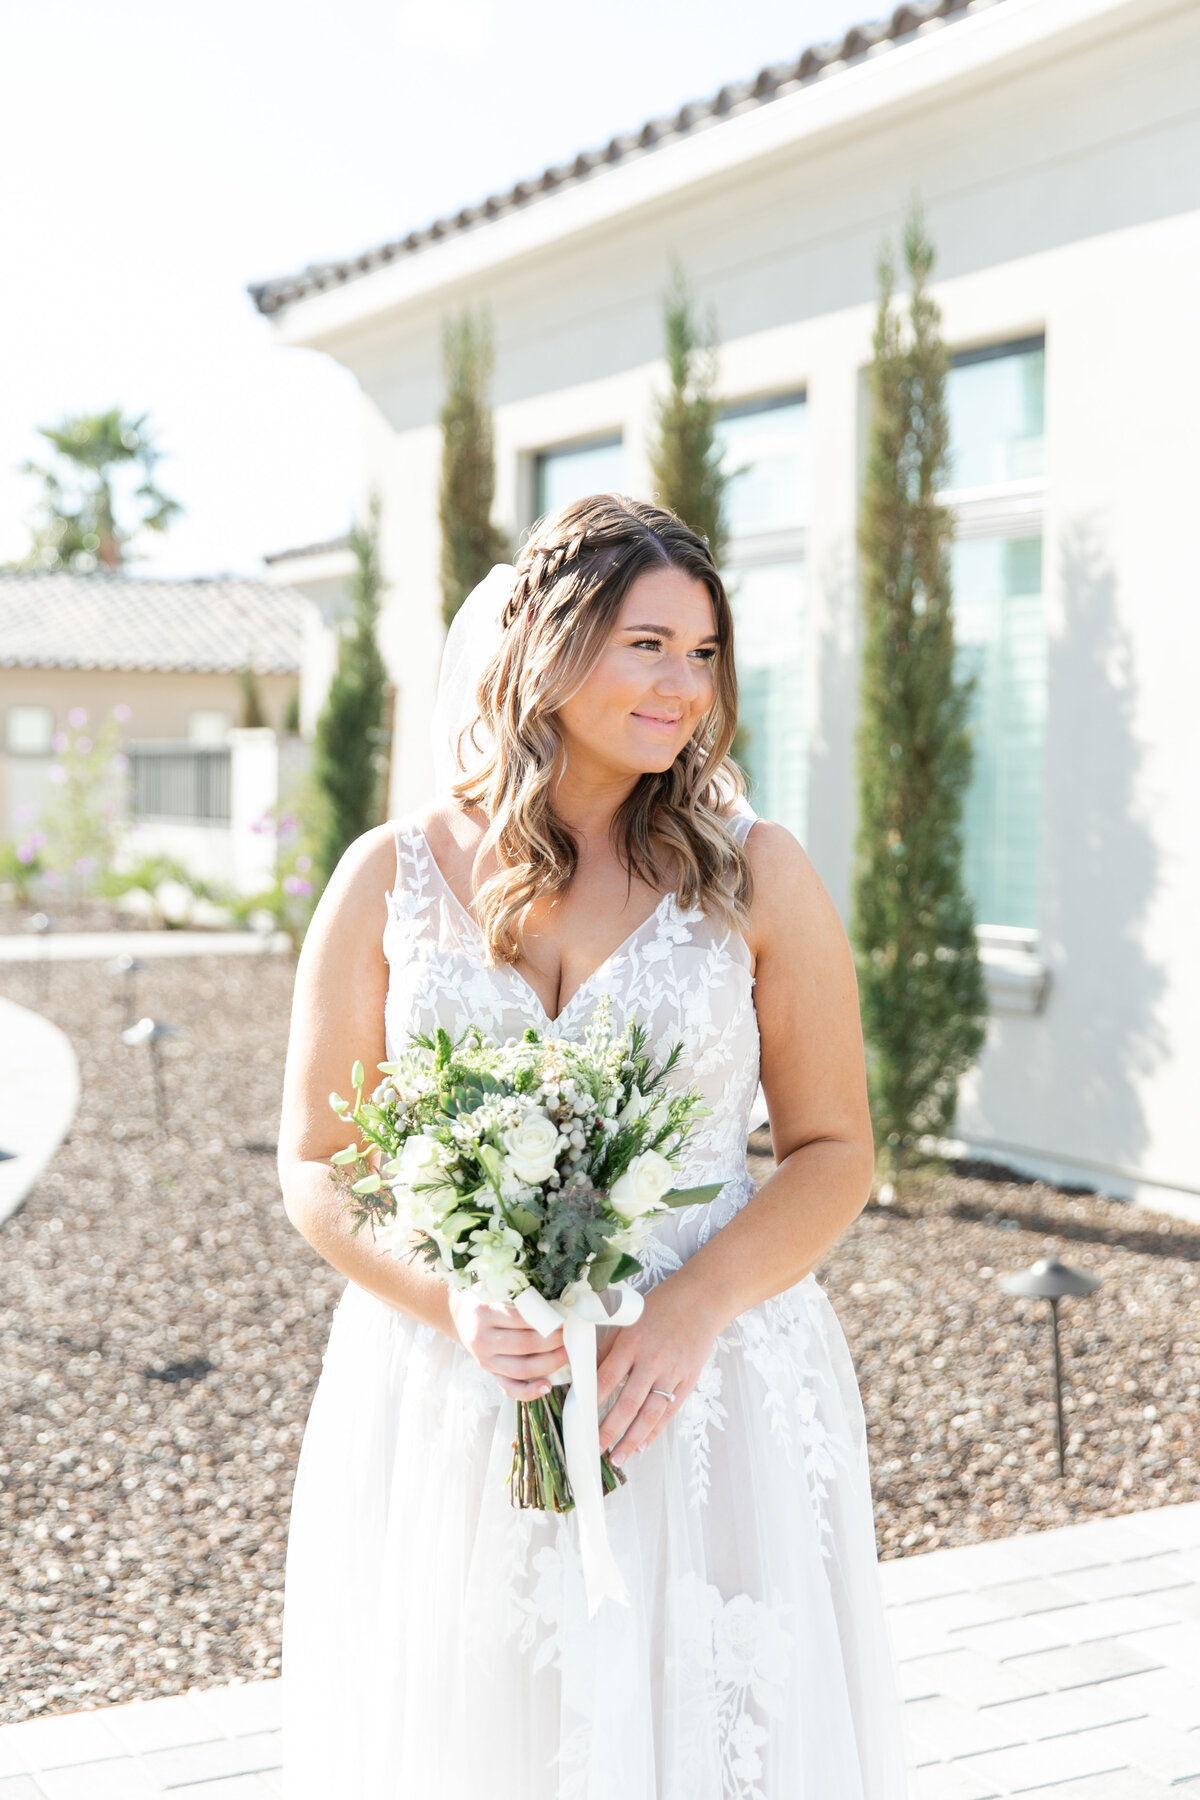 Karlie Colleen Photography - Arizona Backyard wedding - Brittney & Josh-82